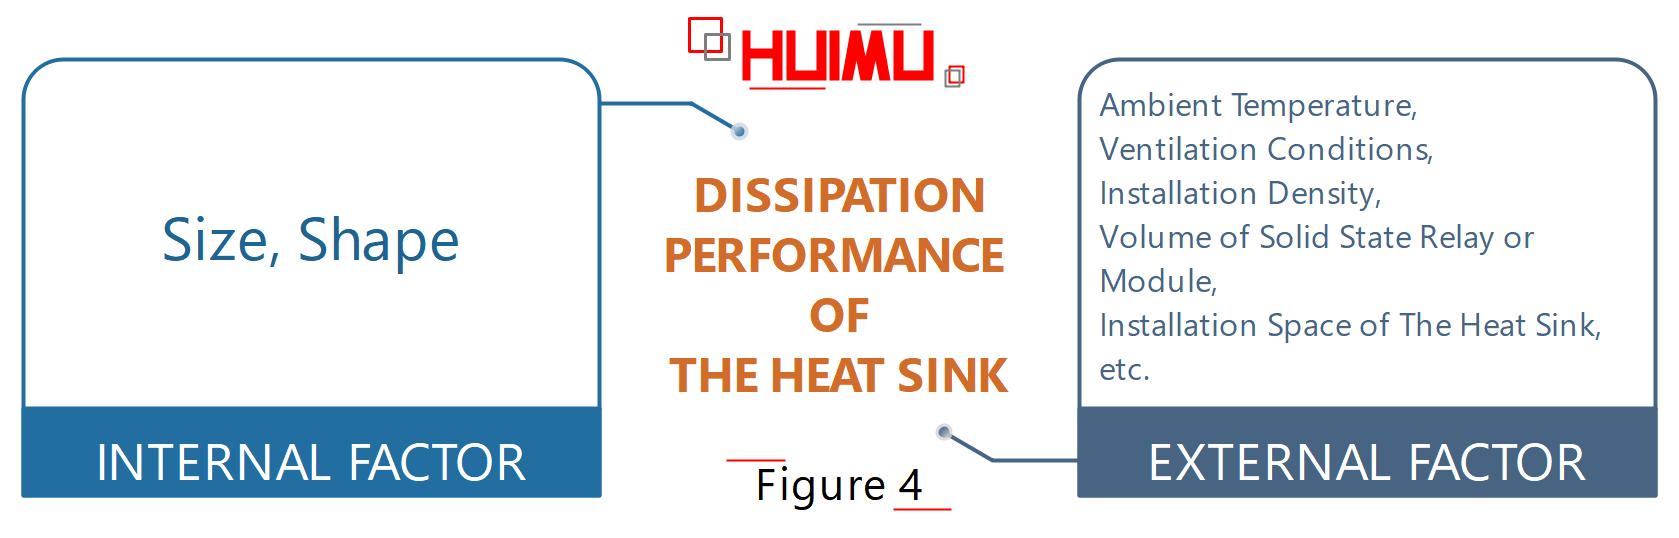 Factors affecting the heat sink performance